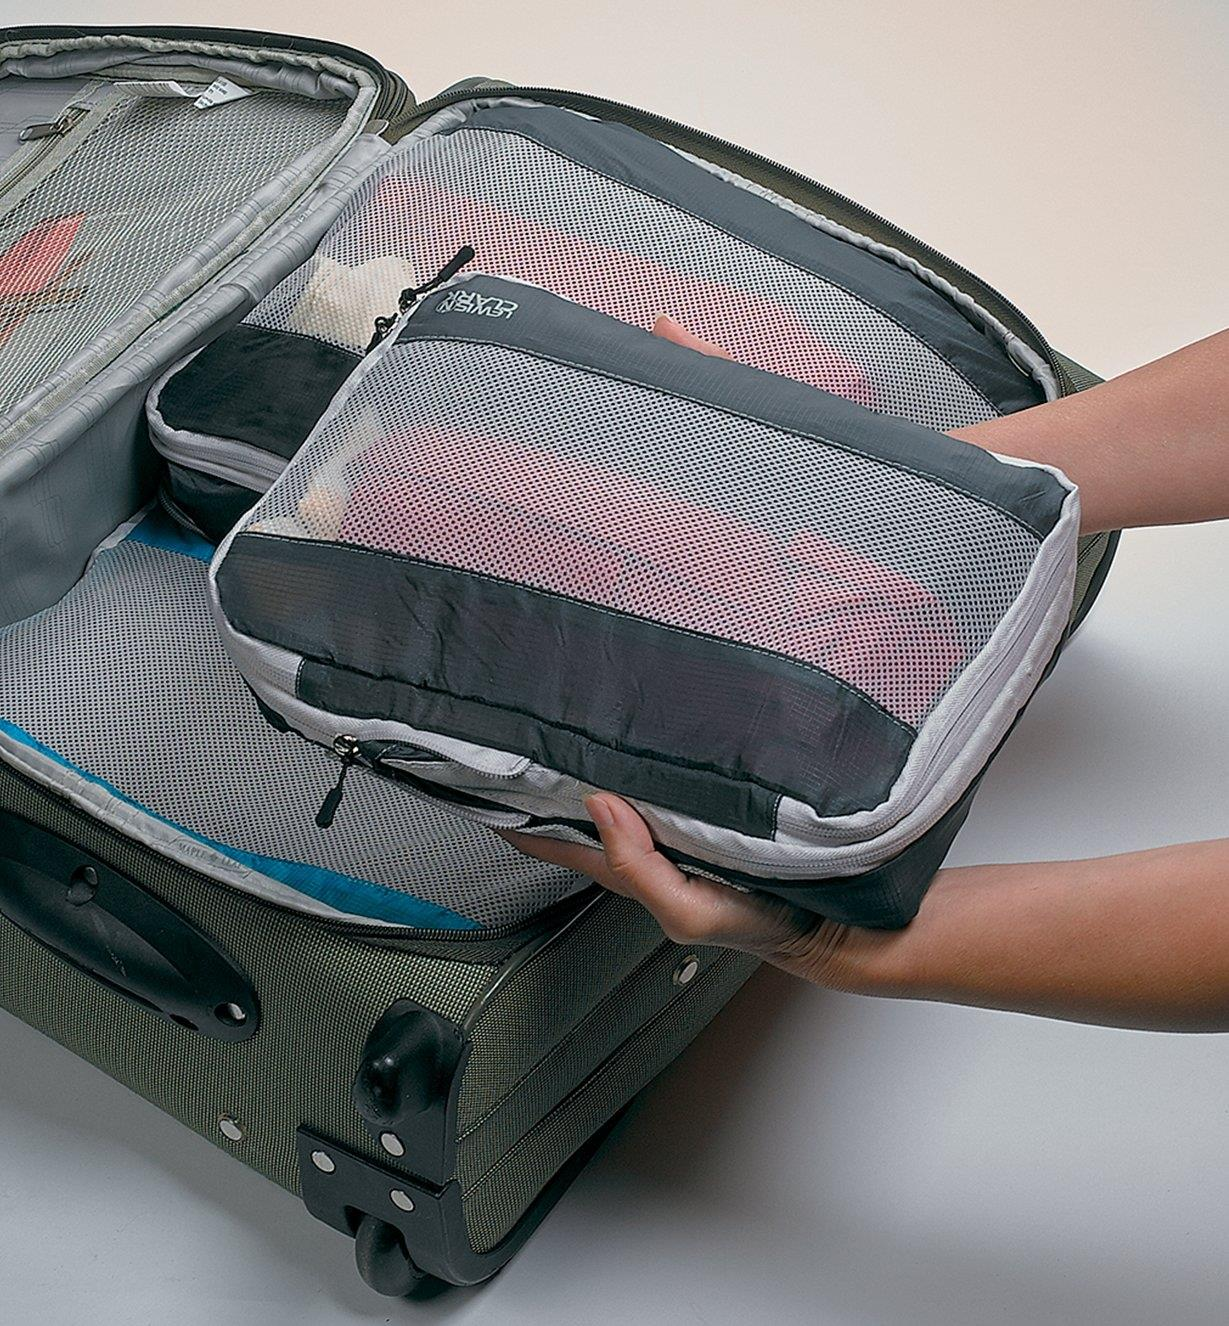 Placing filled Expandable Packing Cubes in a suitcase